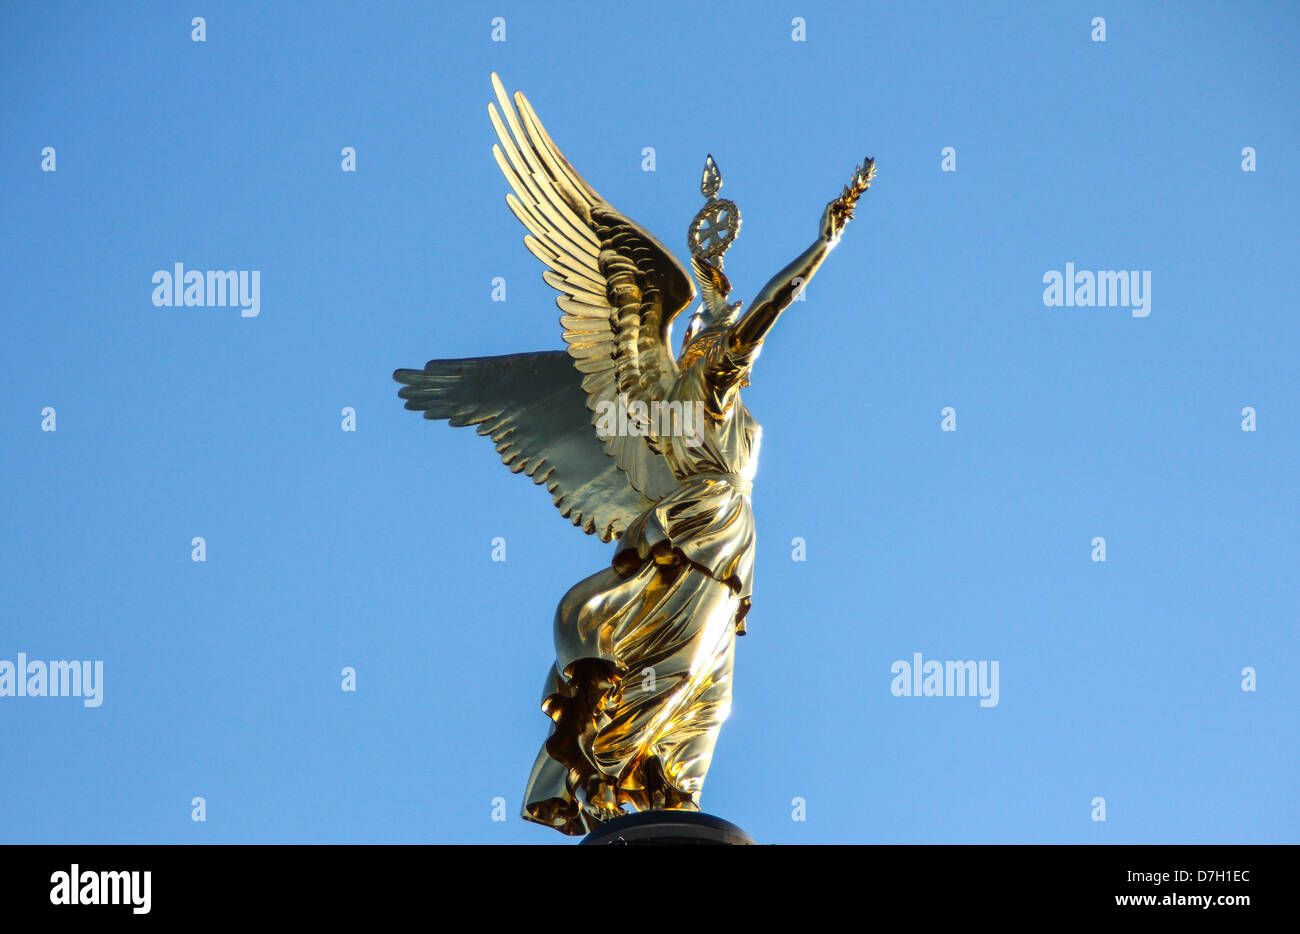 Golden angel of the Column of Victory 'Siegessäule' located in Tiergarten in Berlin, Germany - Stock Image